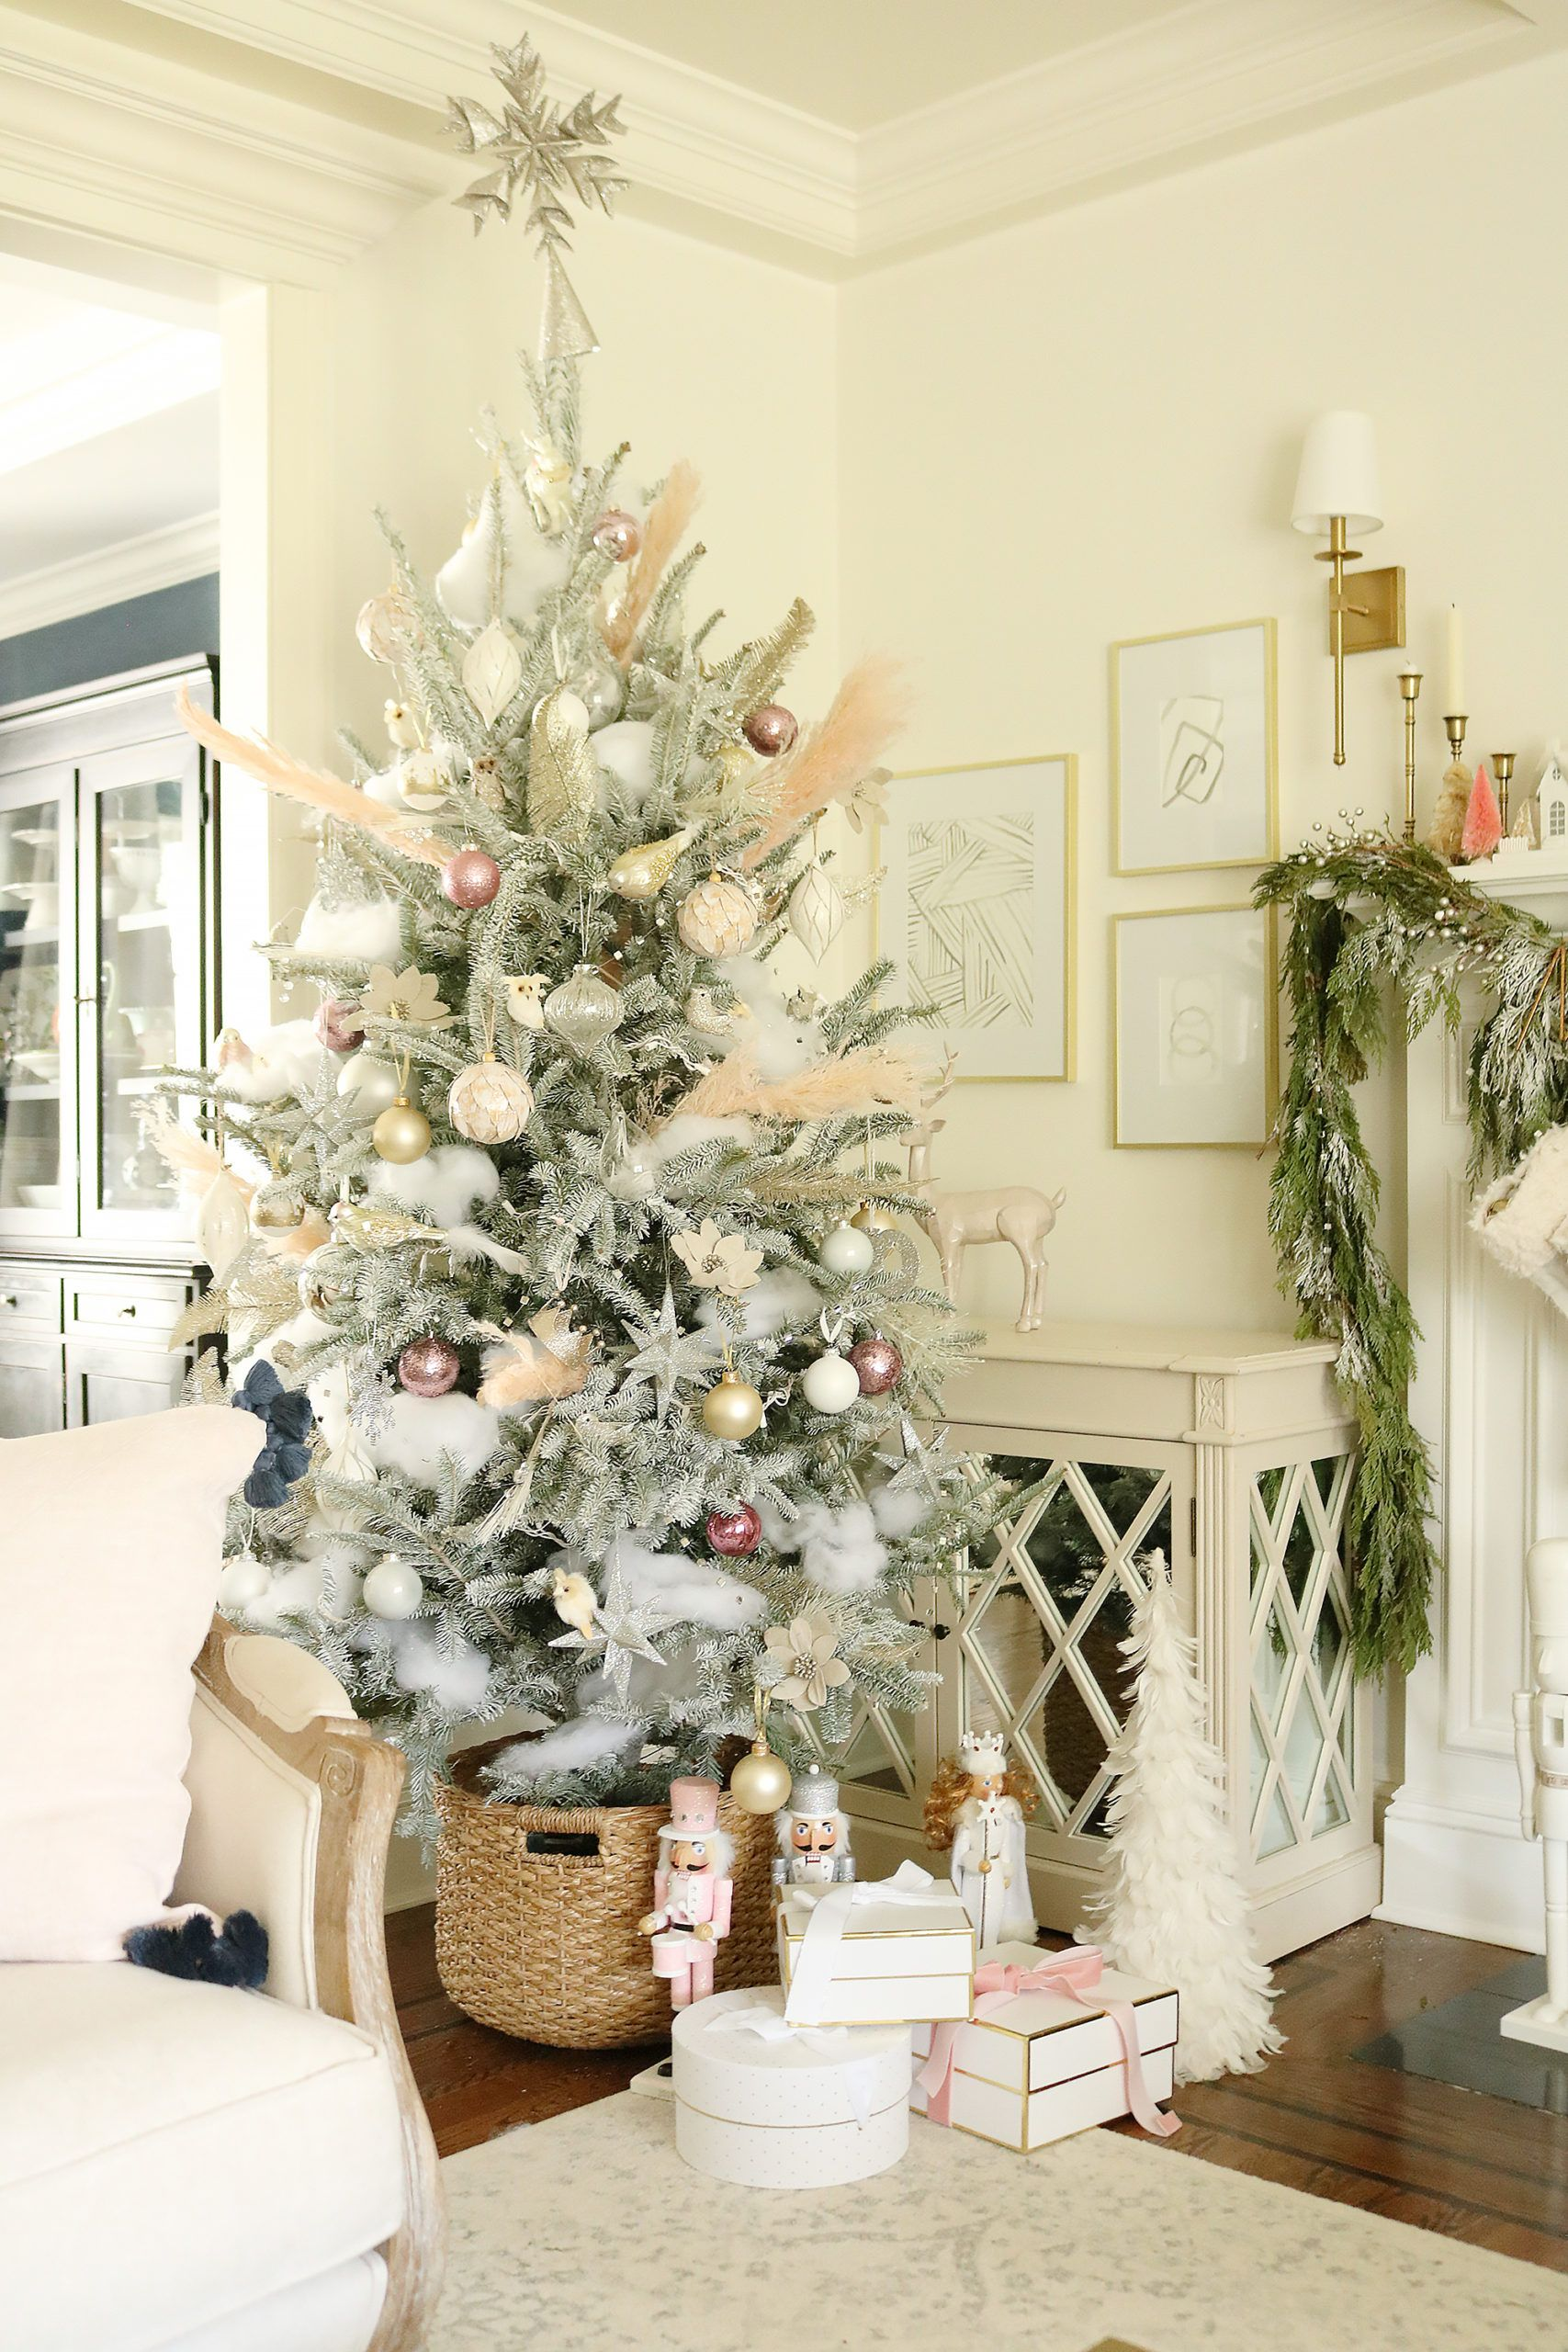 Blush Pink, Rose Gold Pink Christmas Tree and Decor for A